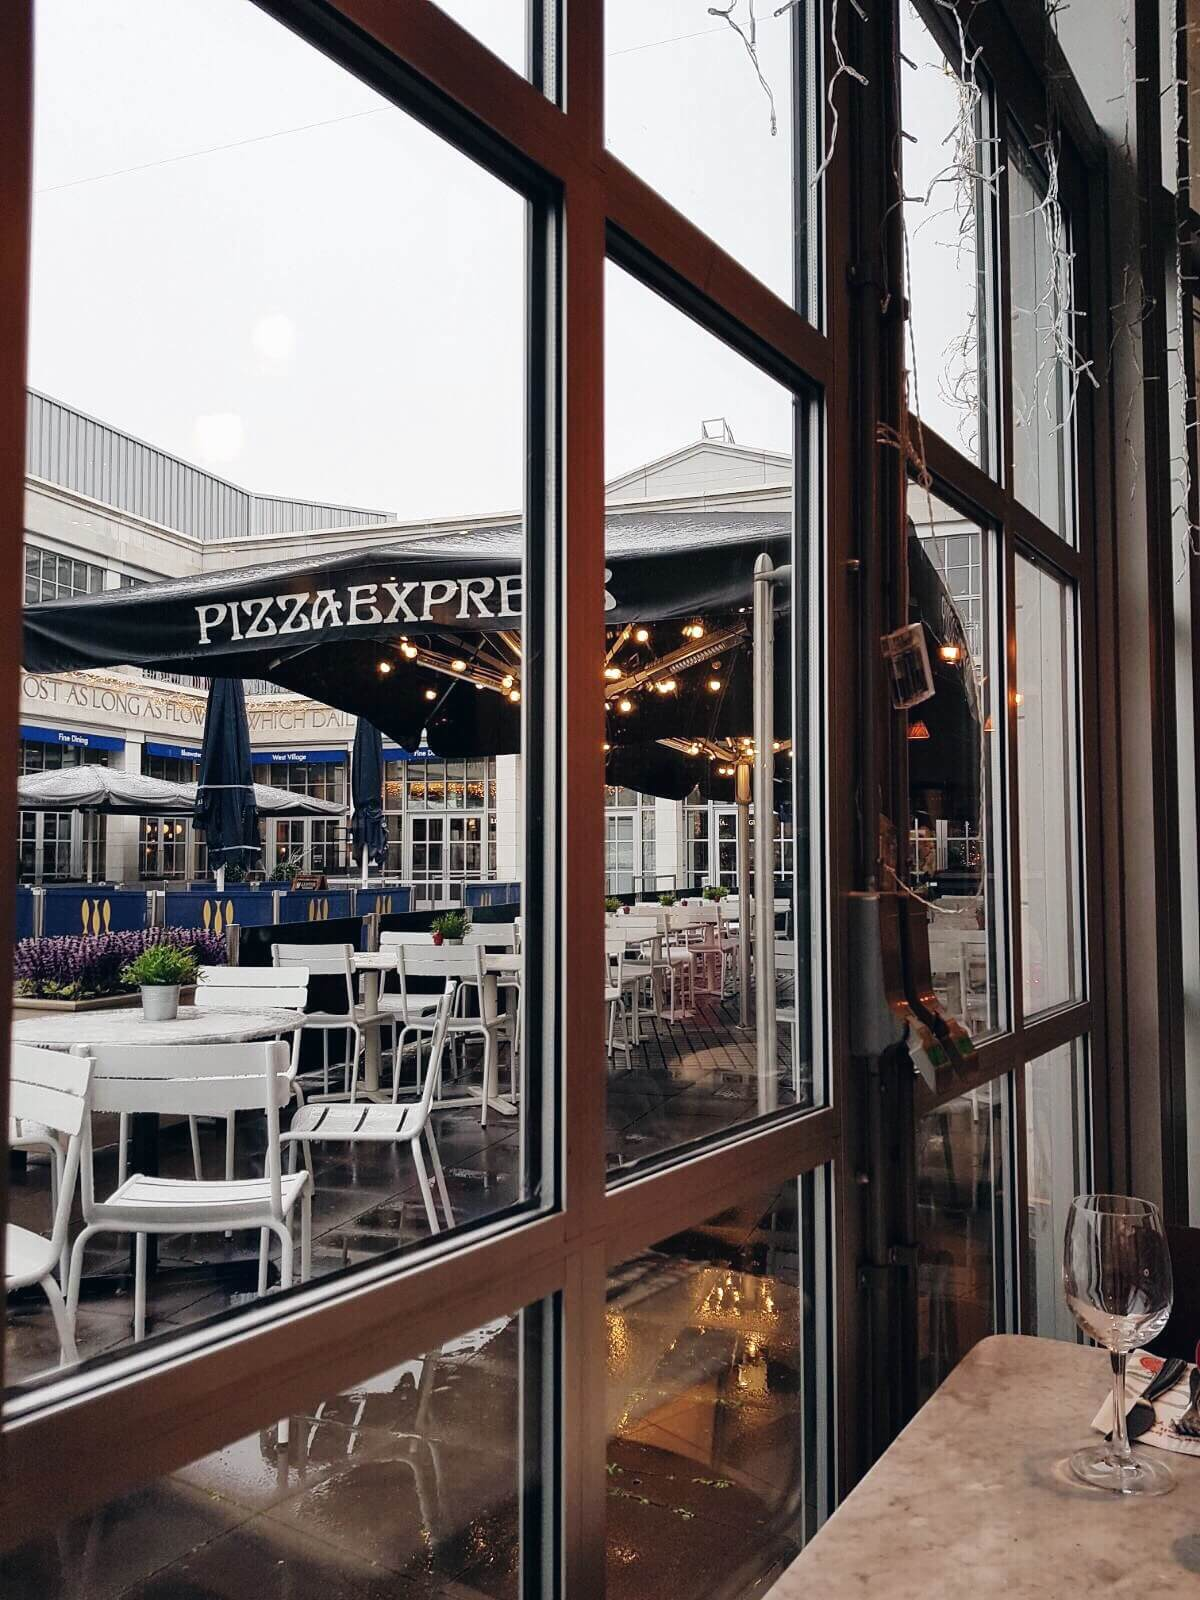 Weekend lunch at Pizza Express